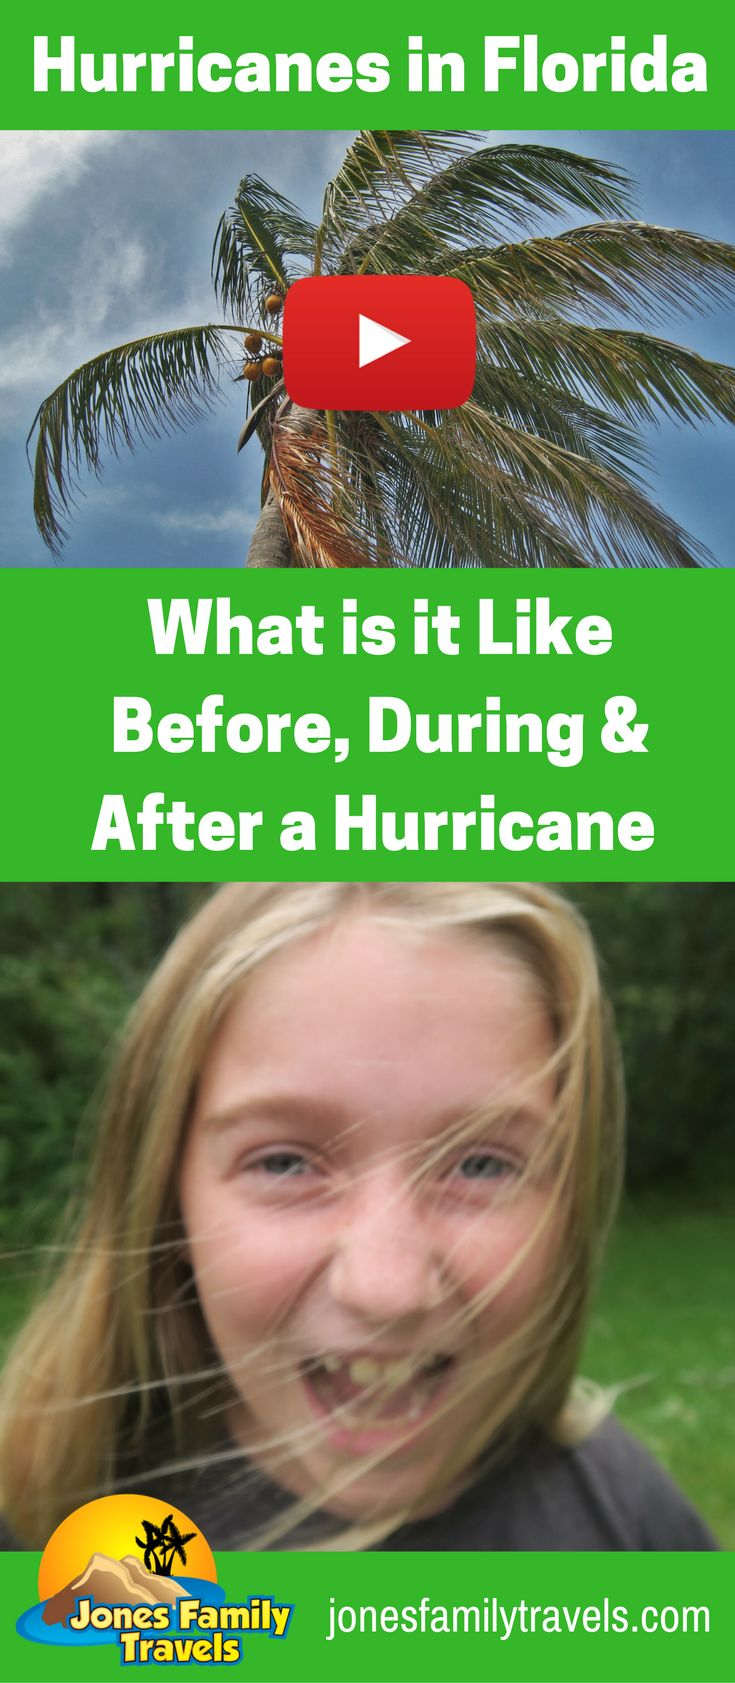 #hurricaneirma What is it like before, during, and after a hurricane in Florida?